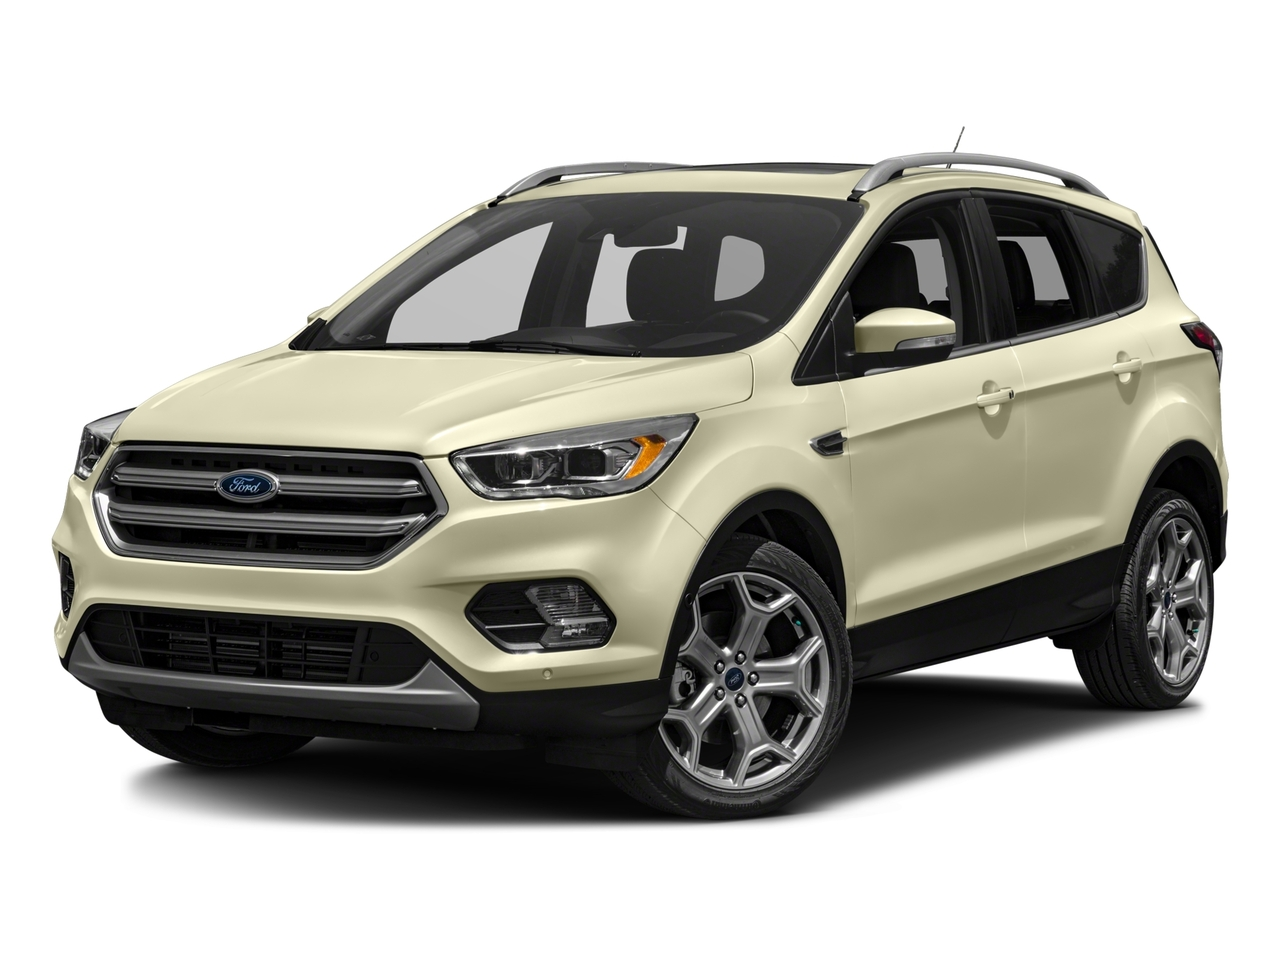 2017 Ford Escape | Wexford, PA